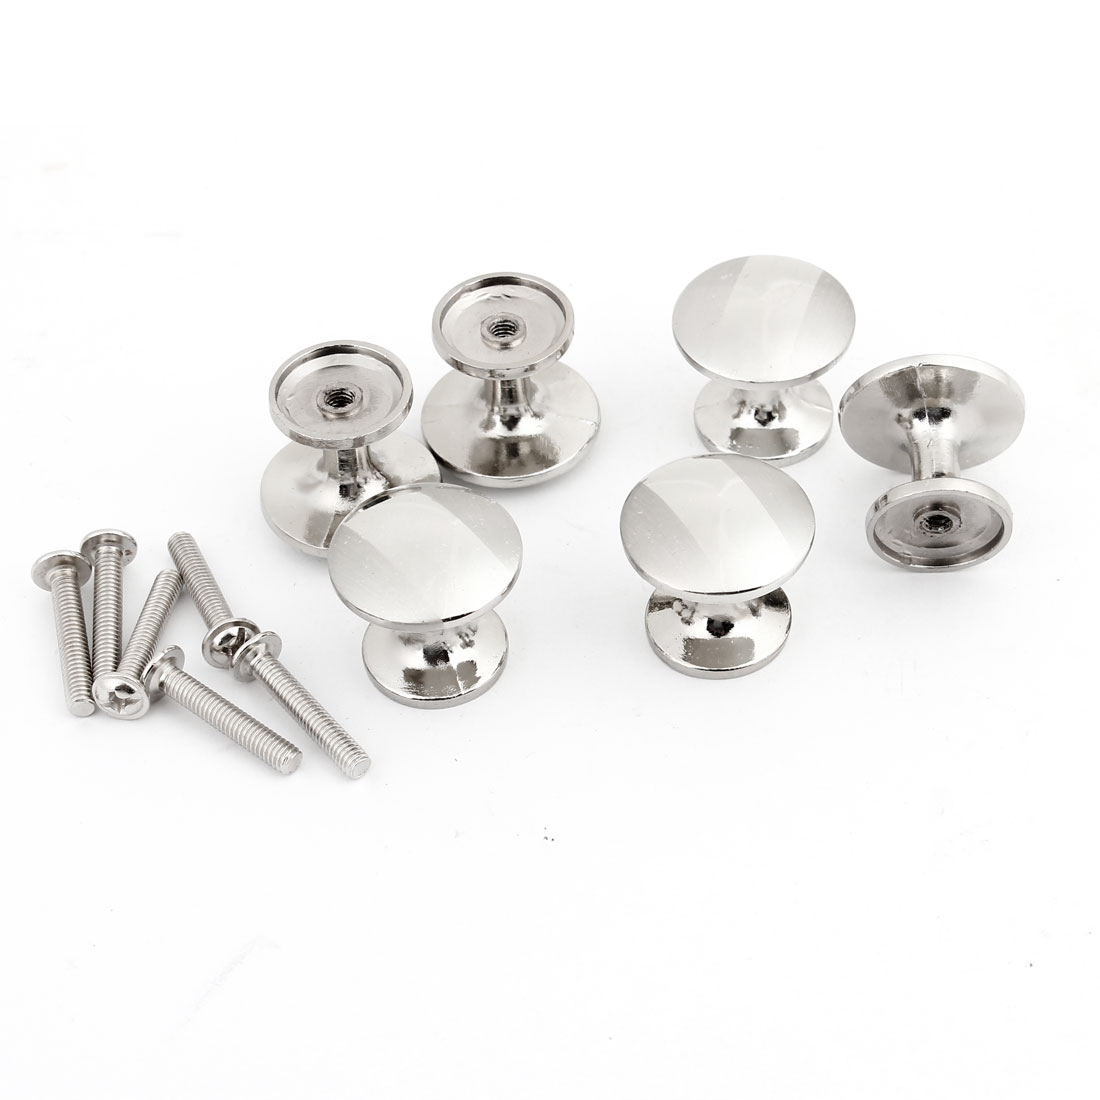 "0.13"" Thread Round Stainless Steel Knob Handle for Cabinet Door 6 Pcs"